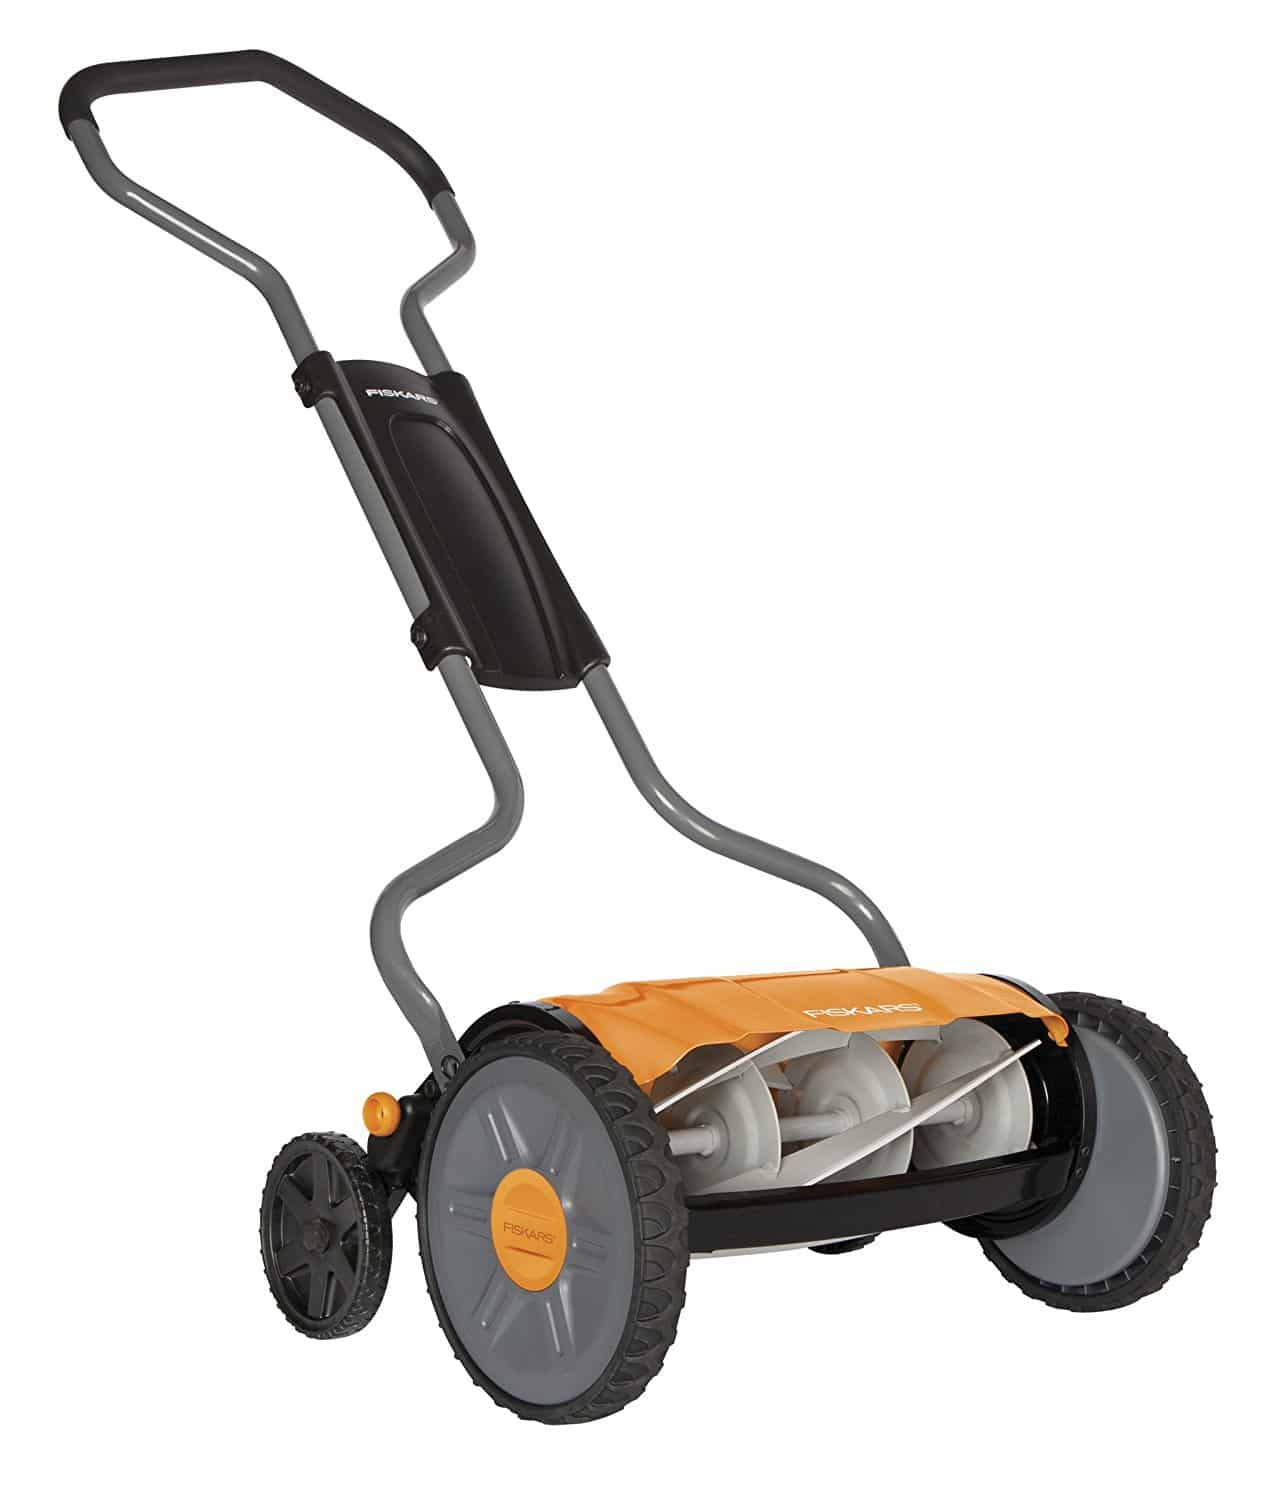 Fiskars 17″ StaySharp Plus Push Reel Mower Review